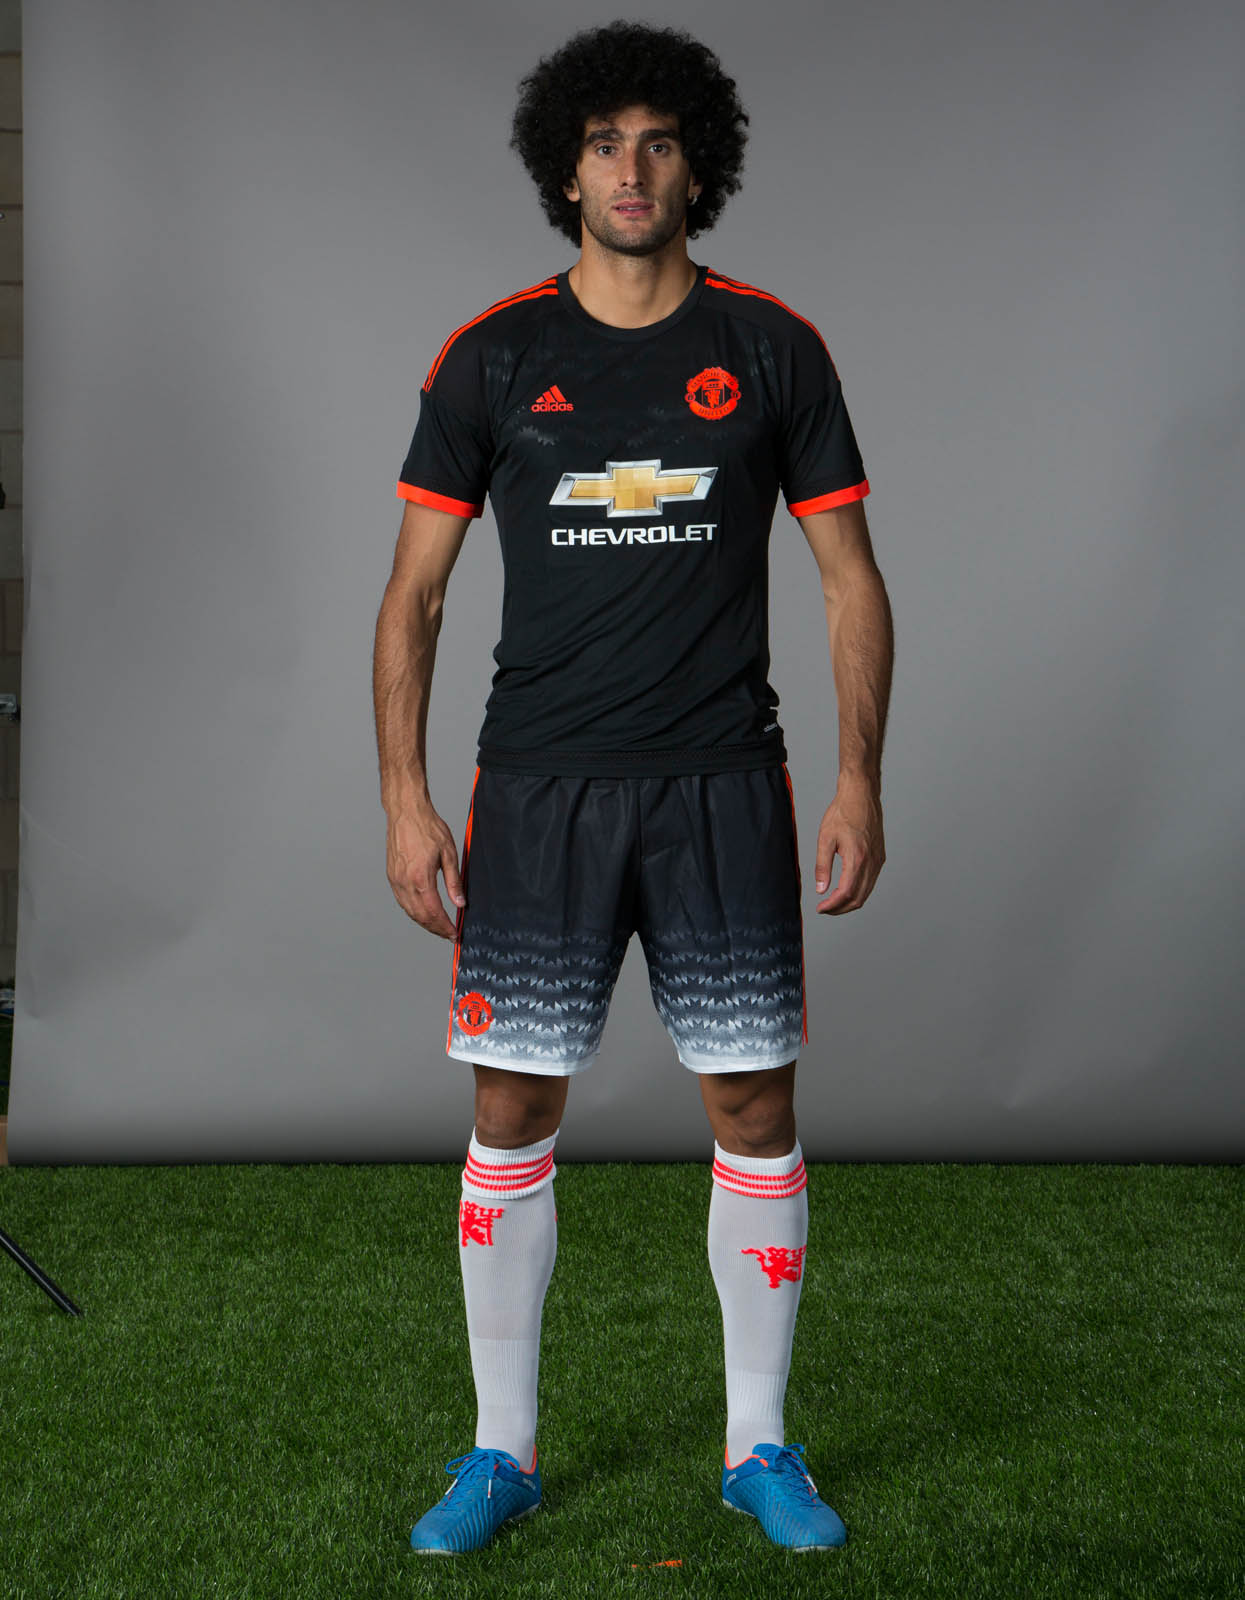 381c665c640 Adidas Manchester United 15-16 Third Kit Jersey Shirt   Have a Nice Day !   nicedaysports August 28 2015